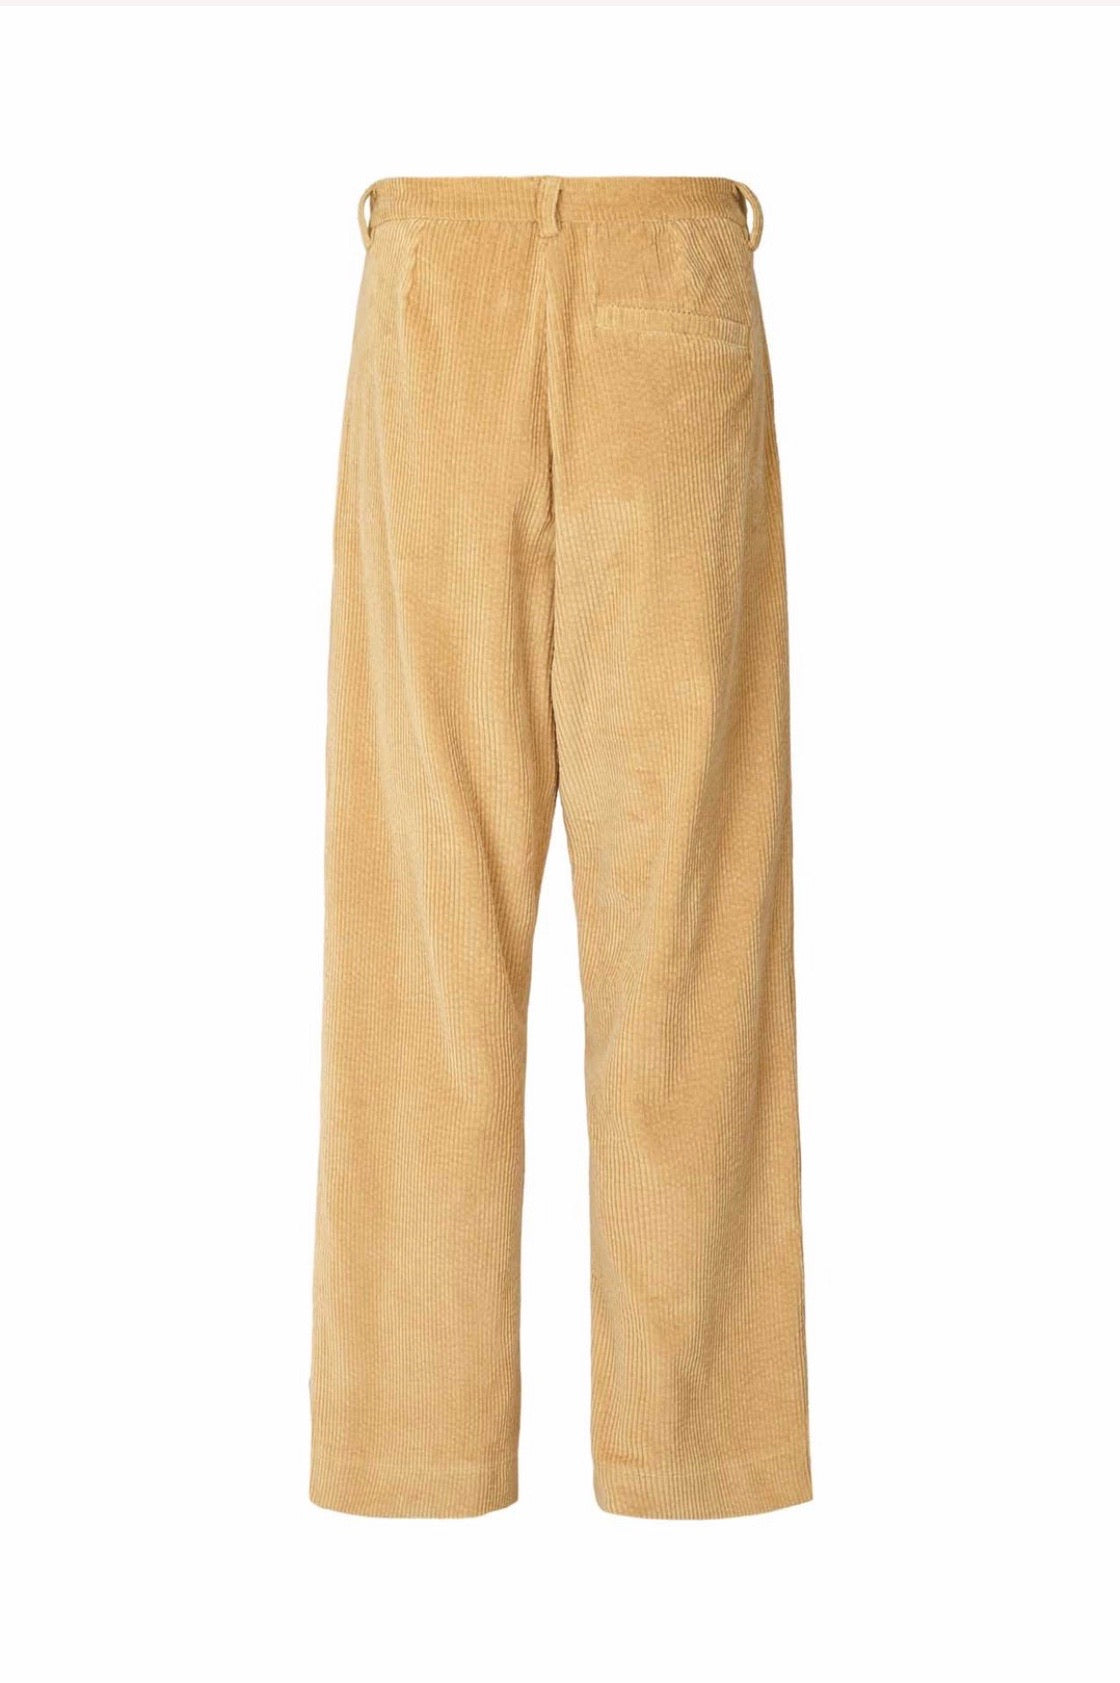 Lolly's Laundry - Selma Pants mustard